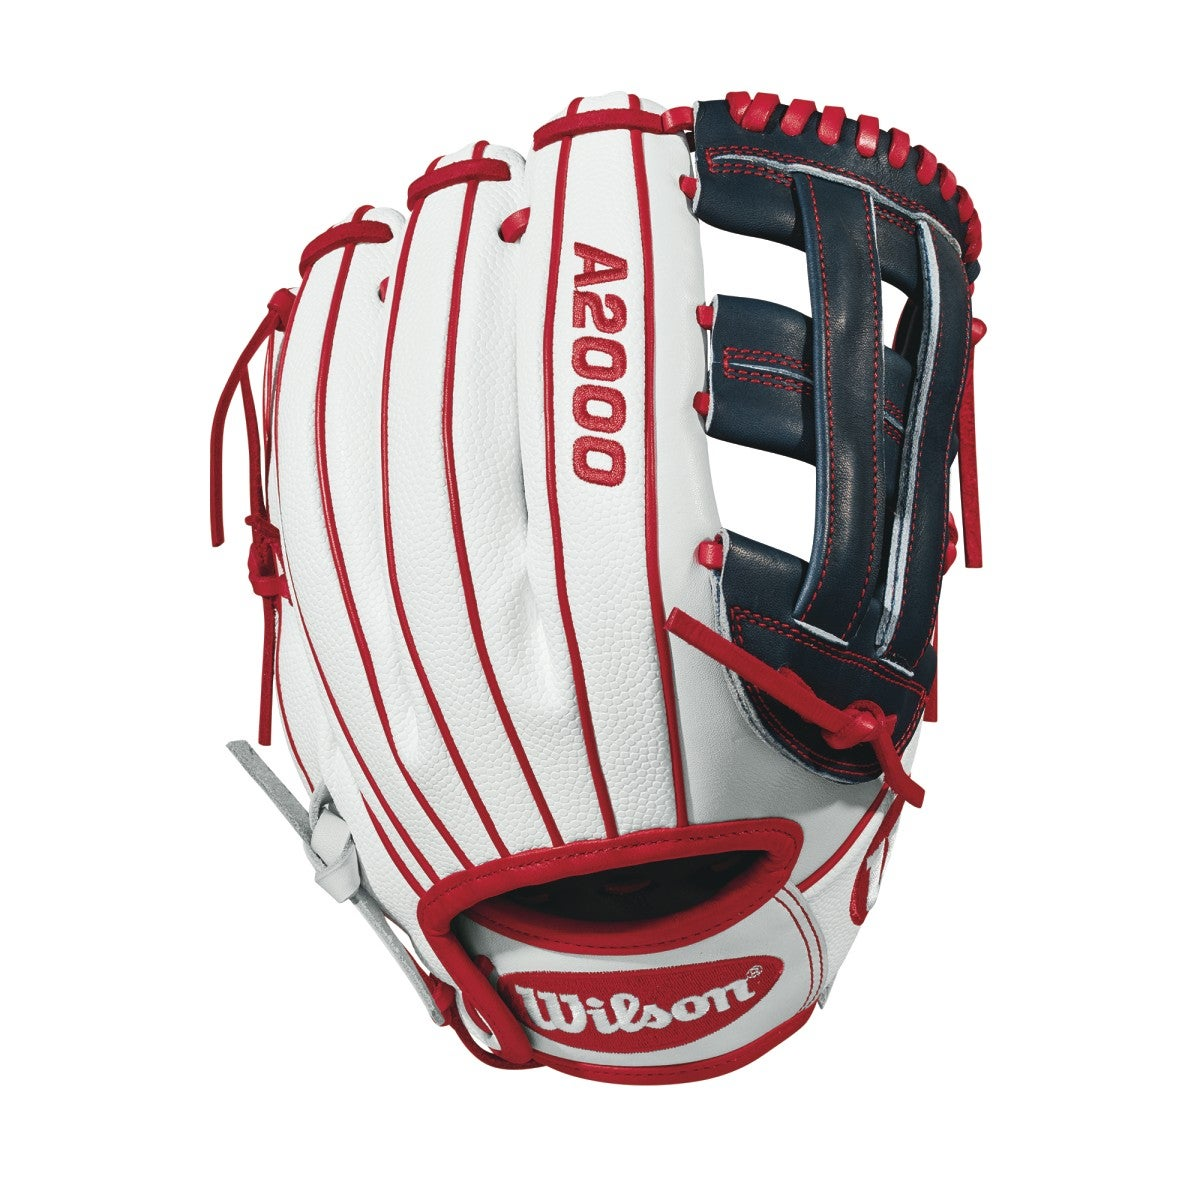 create your own baseball gloves rays glove customize for cheap .